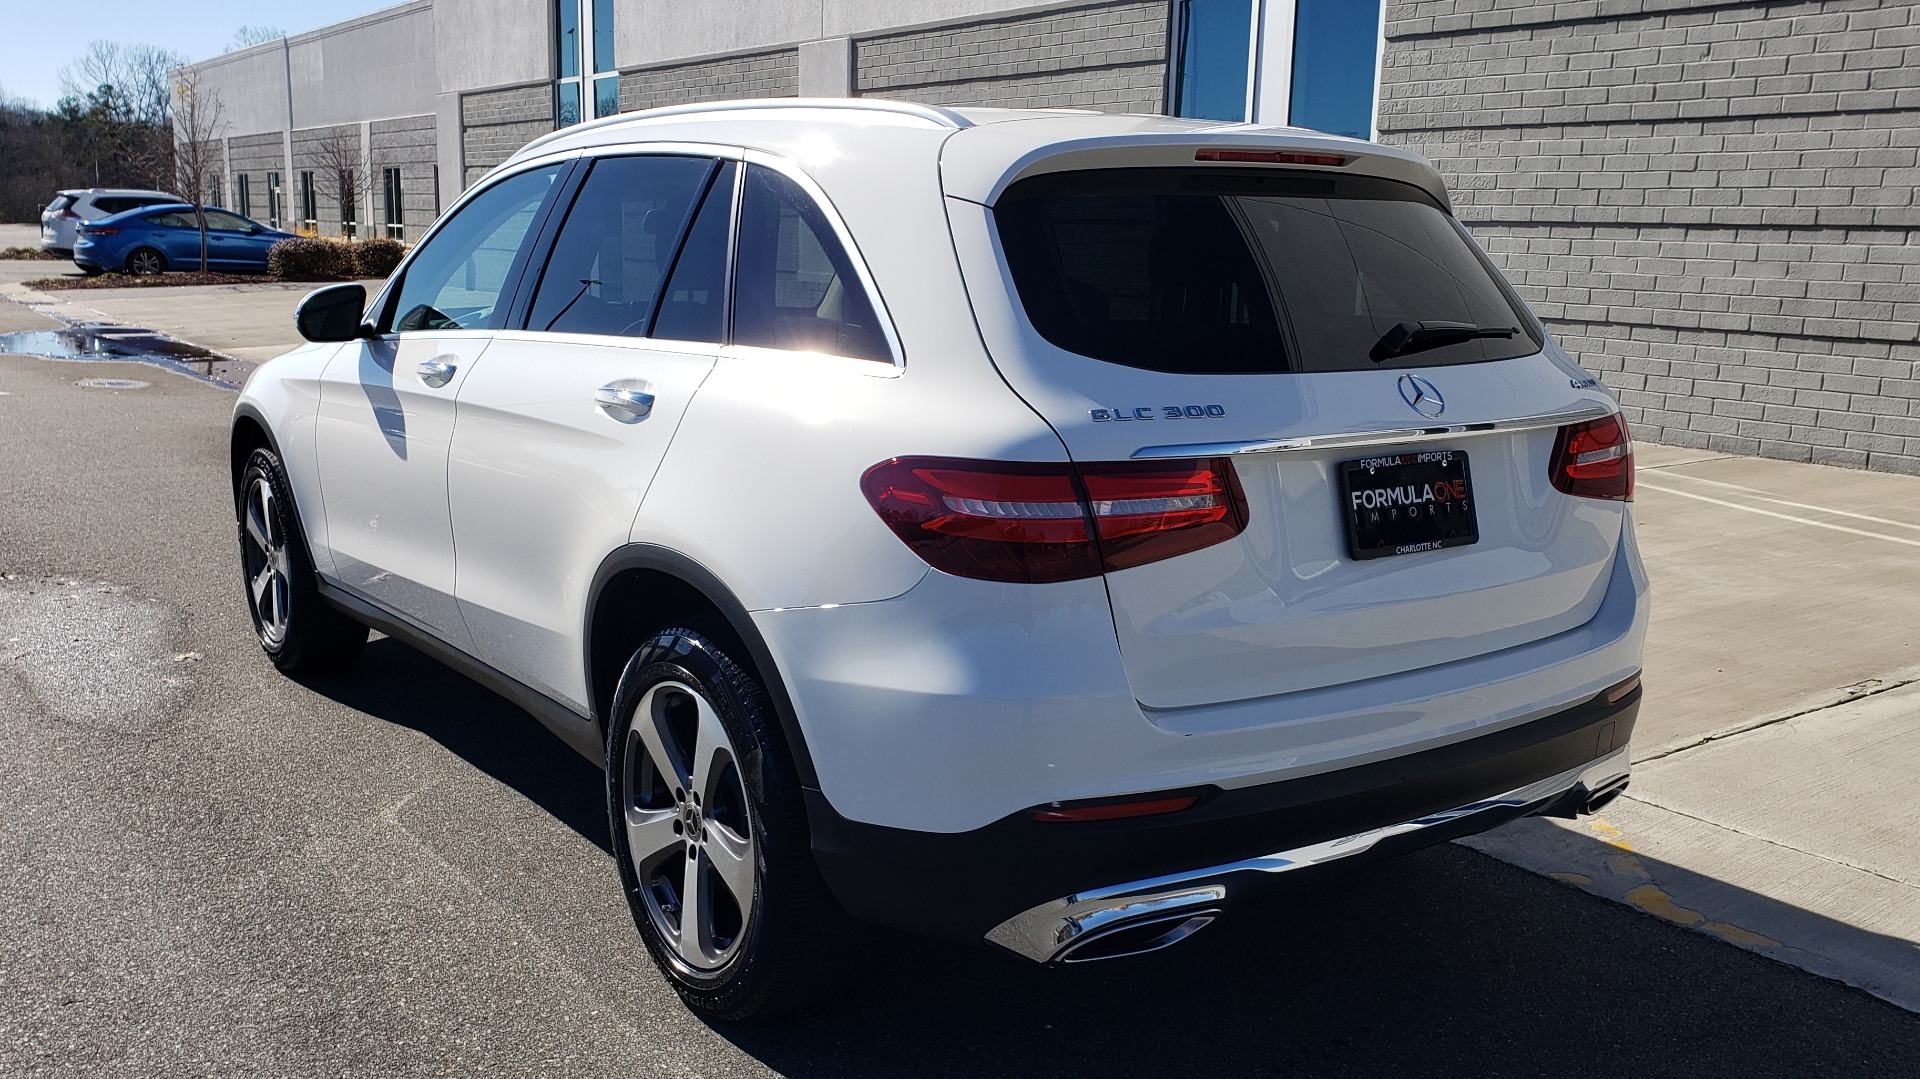 Used 2018 Mercedes-Benz GLC 300 4MATIC / PREM PKG / NAV / SUNROOF / REARVIEW for sale $36,995 at Formula Imports in Charlotte NC 28227 3